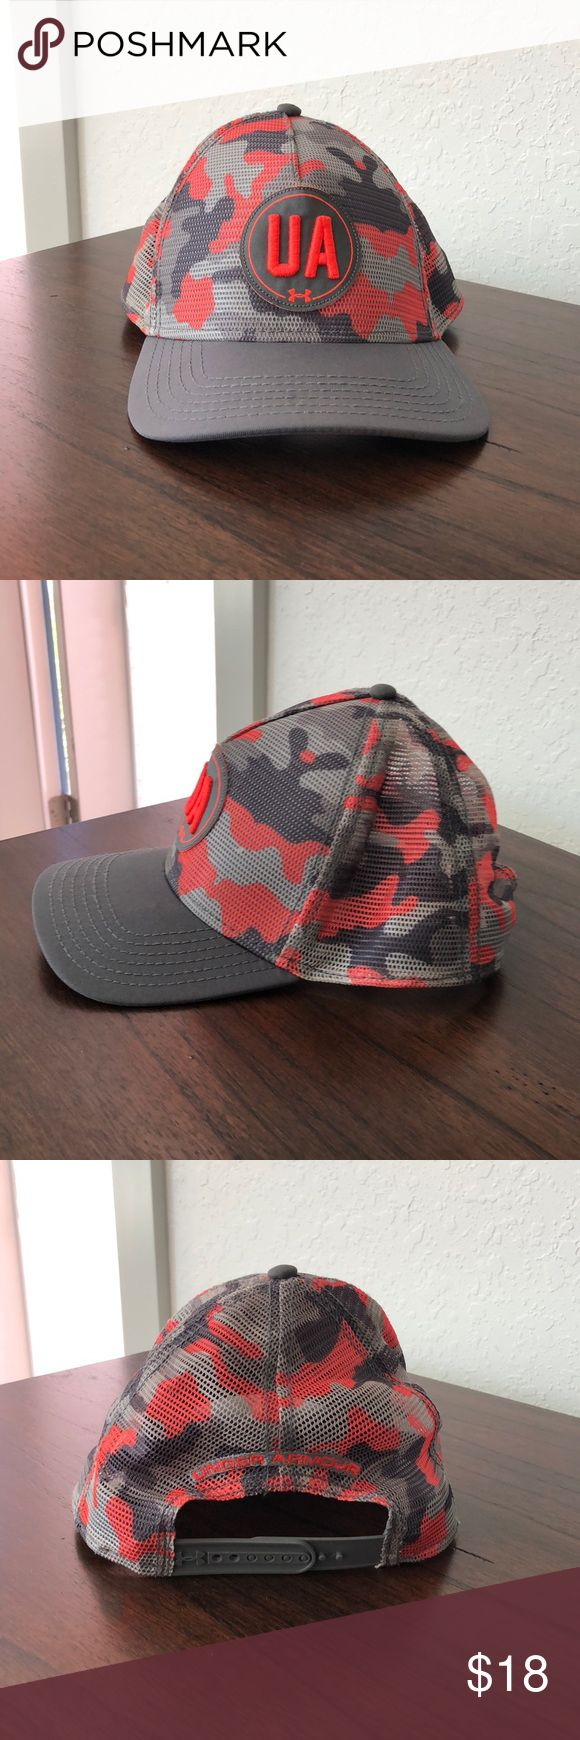 Under Armour Orange/Grey Camo SnapBack Hat Under Armour Orange/Grey Camo SnapBack Hat Under Armour Accessories Hats